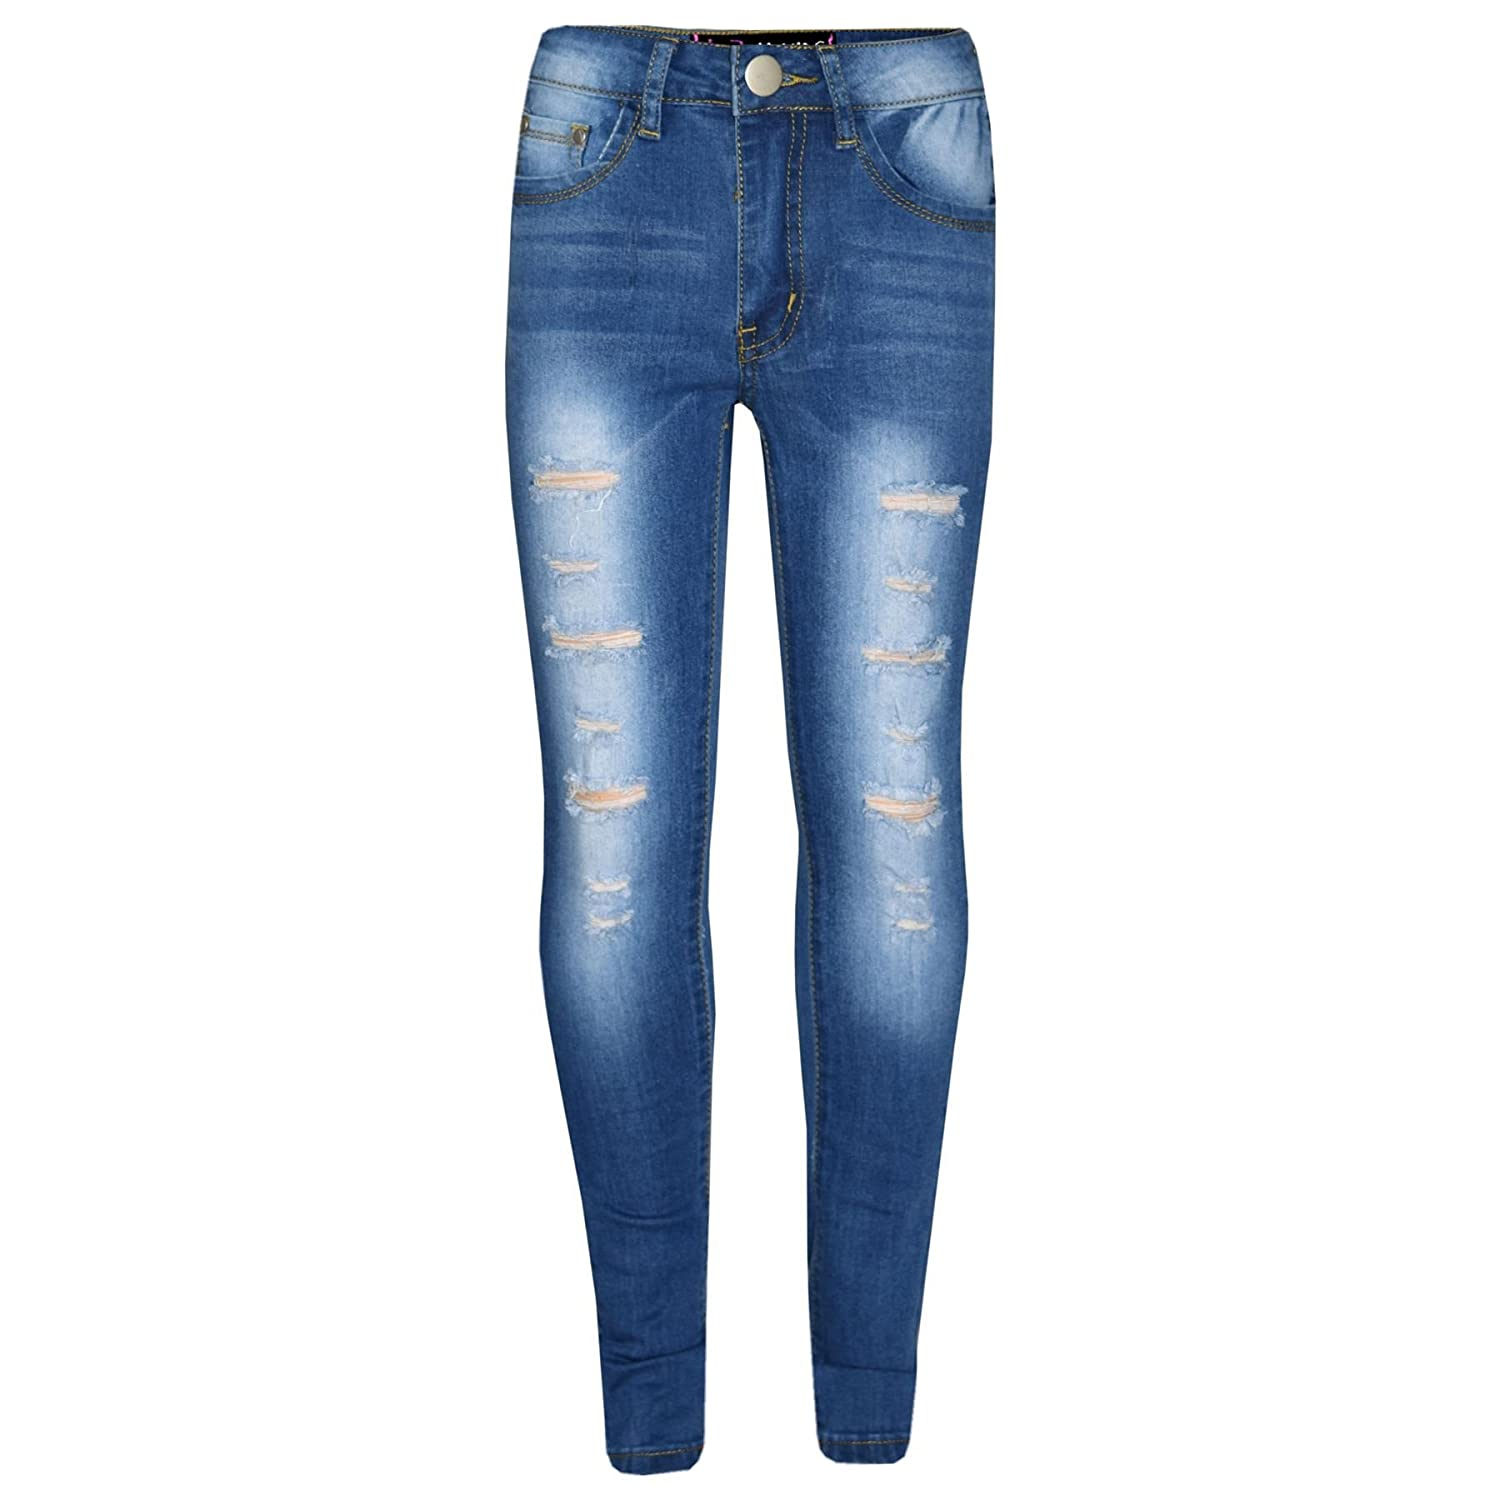 38cc33b6c96c1 Amazon.com: Kids Girls Skinny Jeans Denim Ripped Stretchy Pants Jeggings  New Age 3-13 Years: Clothing